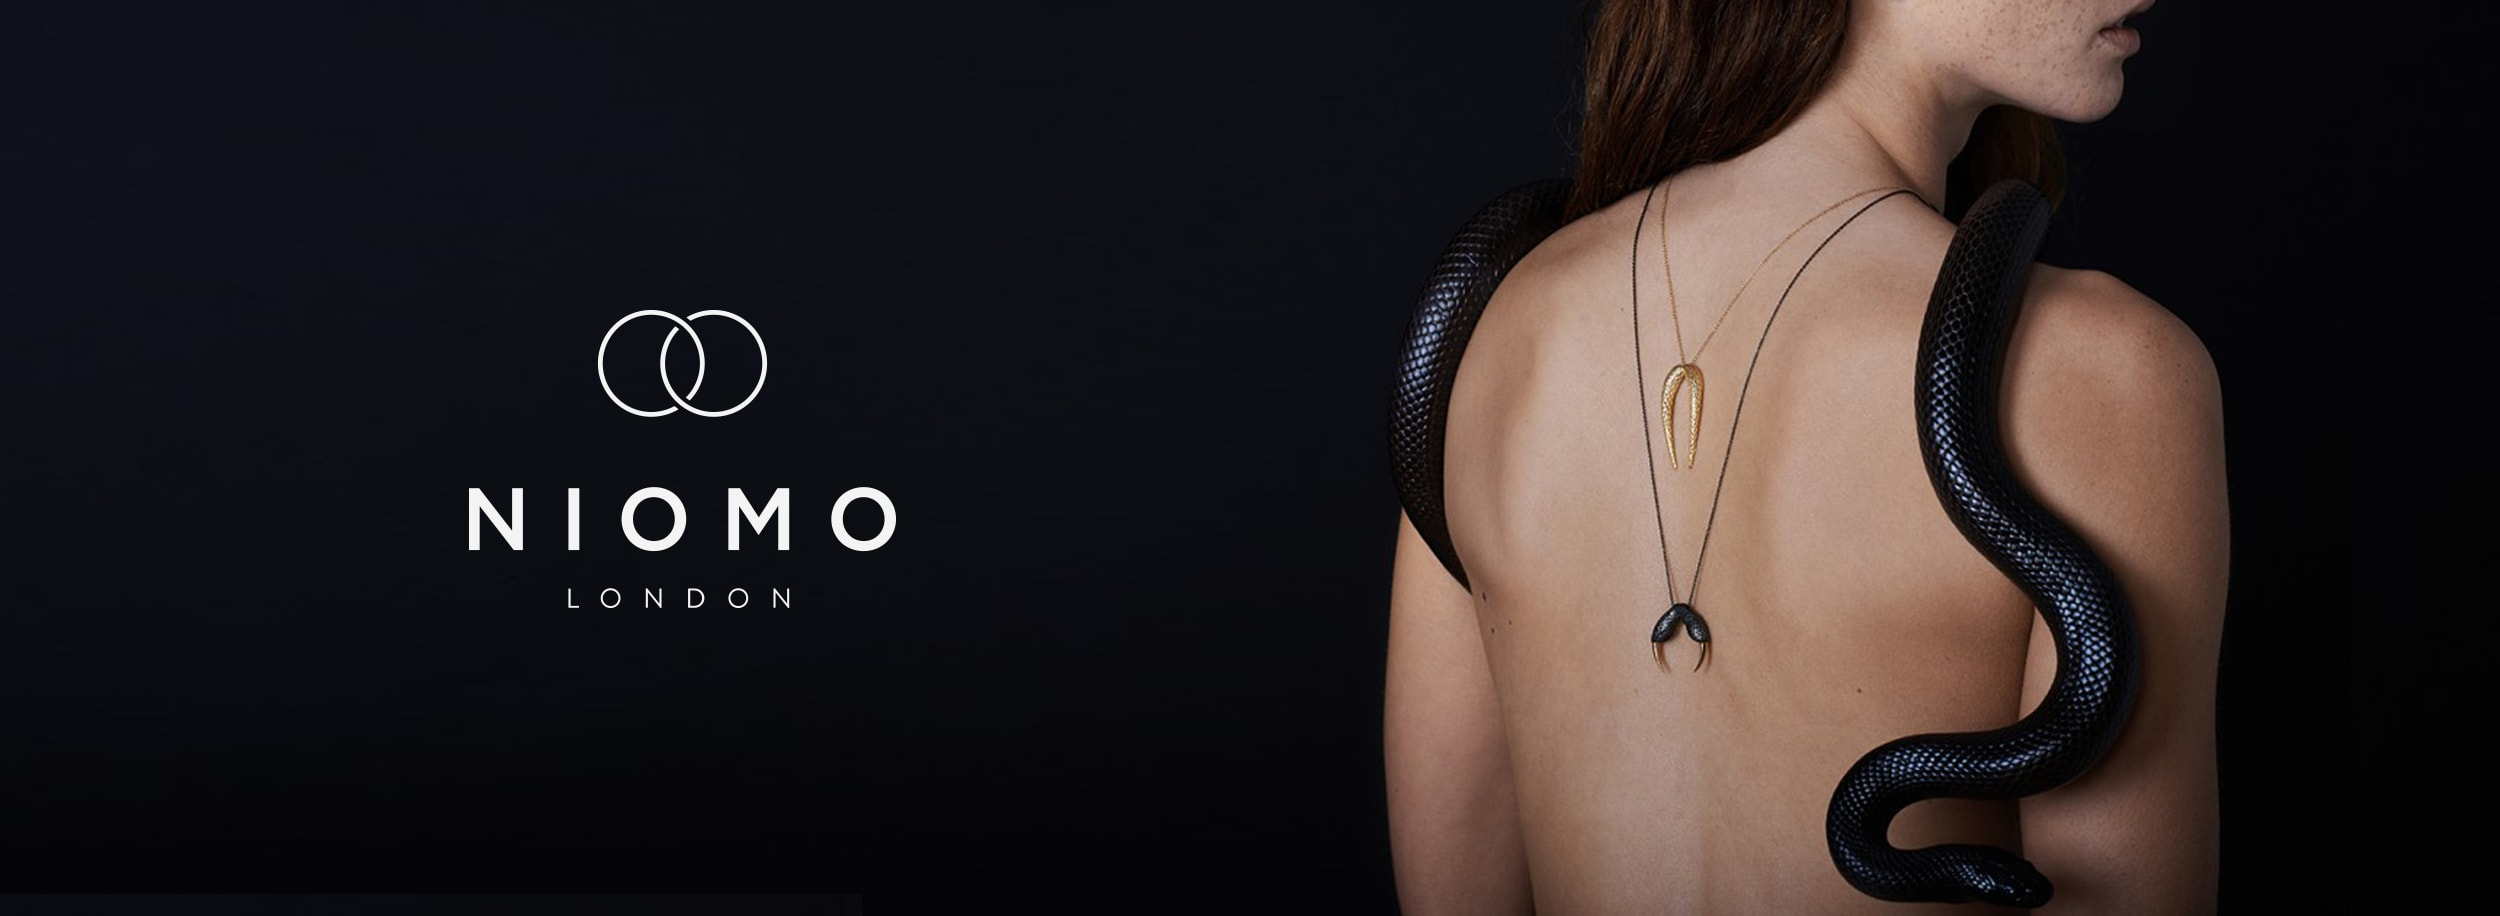 Calm and simple logo works great in contrast to NIOMO's necklaces and rings that are quite experimental and aggressive.